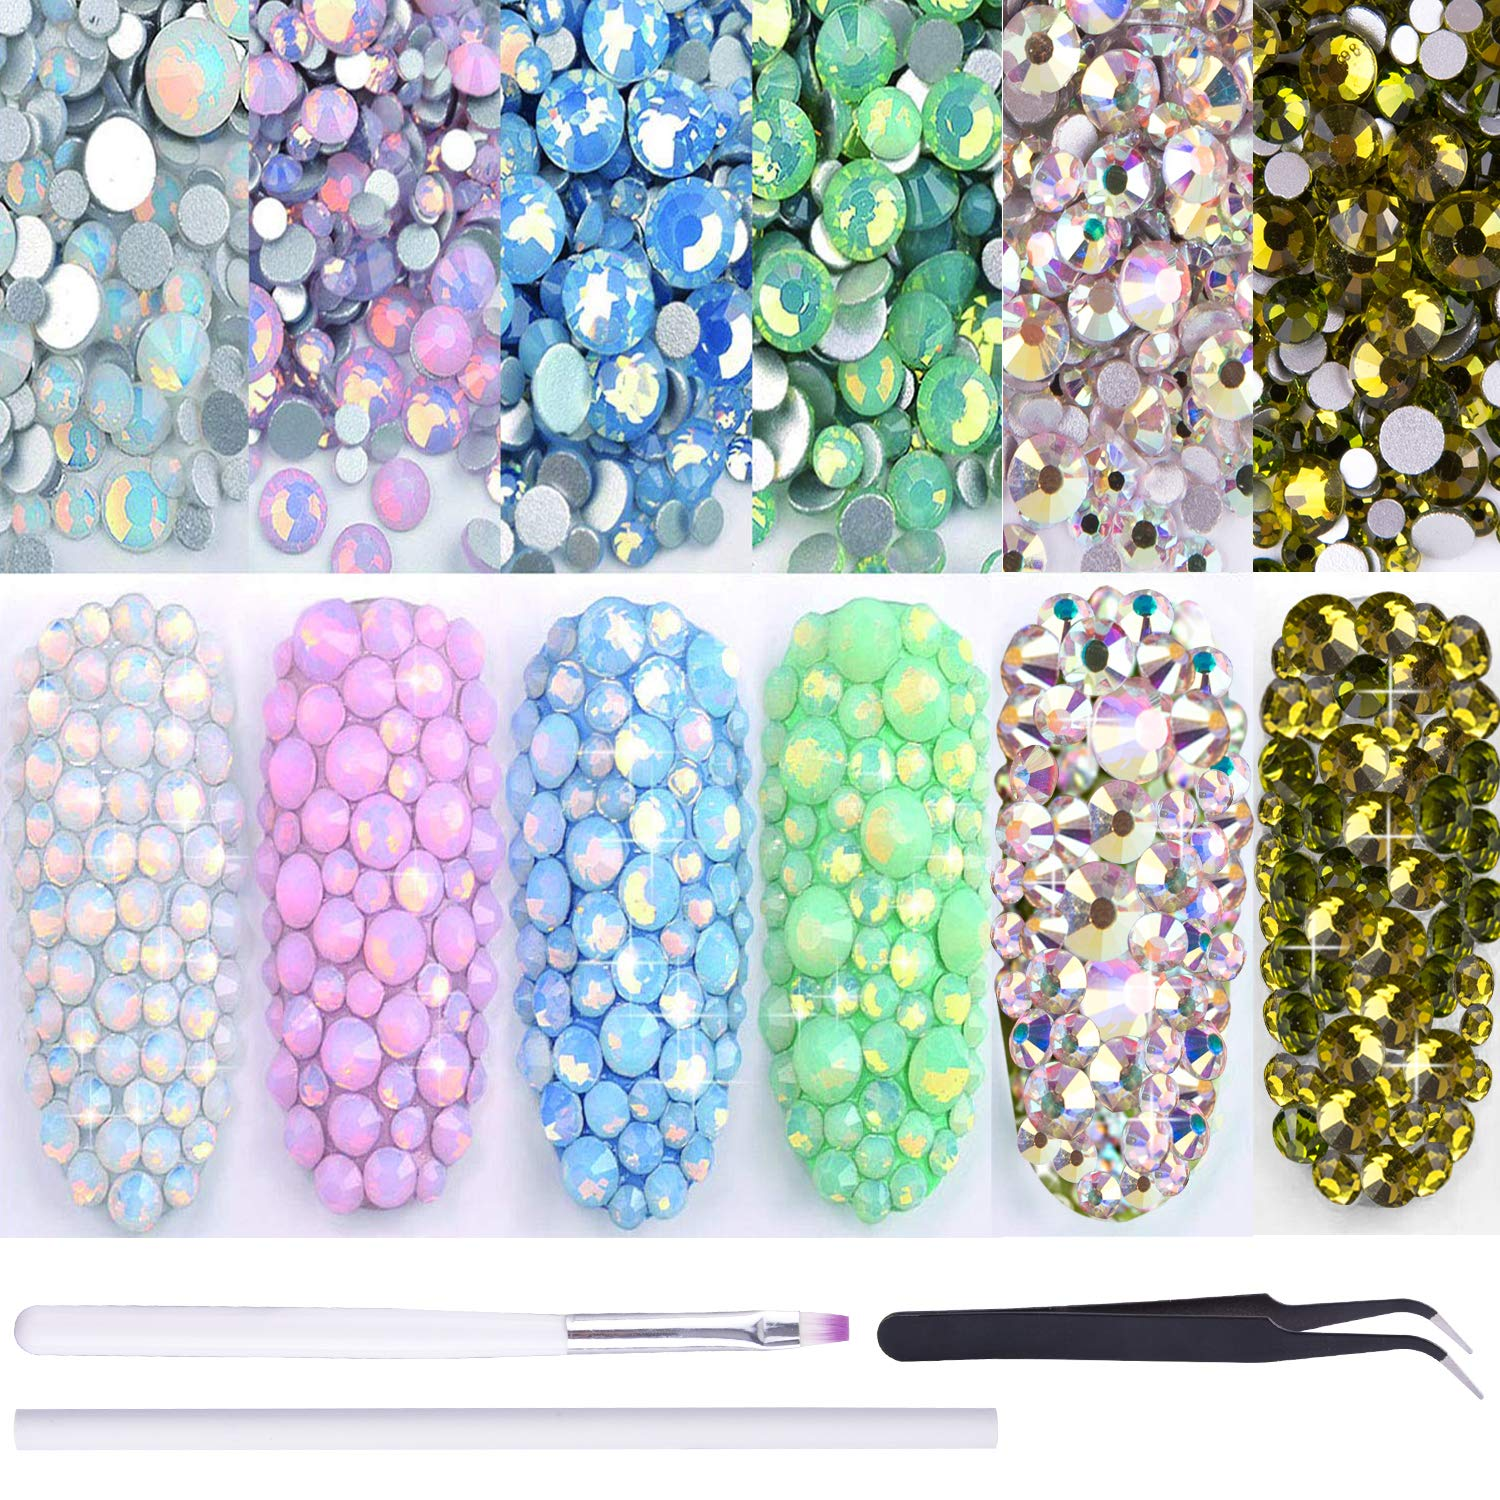 Duufin 6 Packs Opal Rhinestones Nails Art Crystal Rhinestone Nail Diamond Sparkly Nail Gems Flatback Nail Charms Stones Nail Art Decorations with 1 Pc Pick Up Tweezers and 1 Pc Brush Pen by Duufin